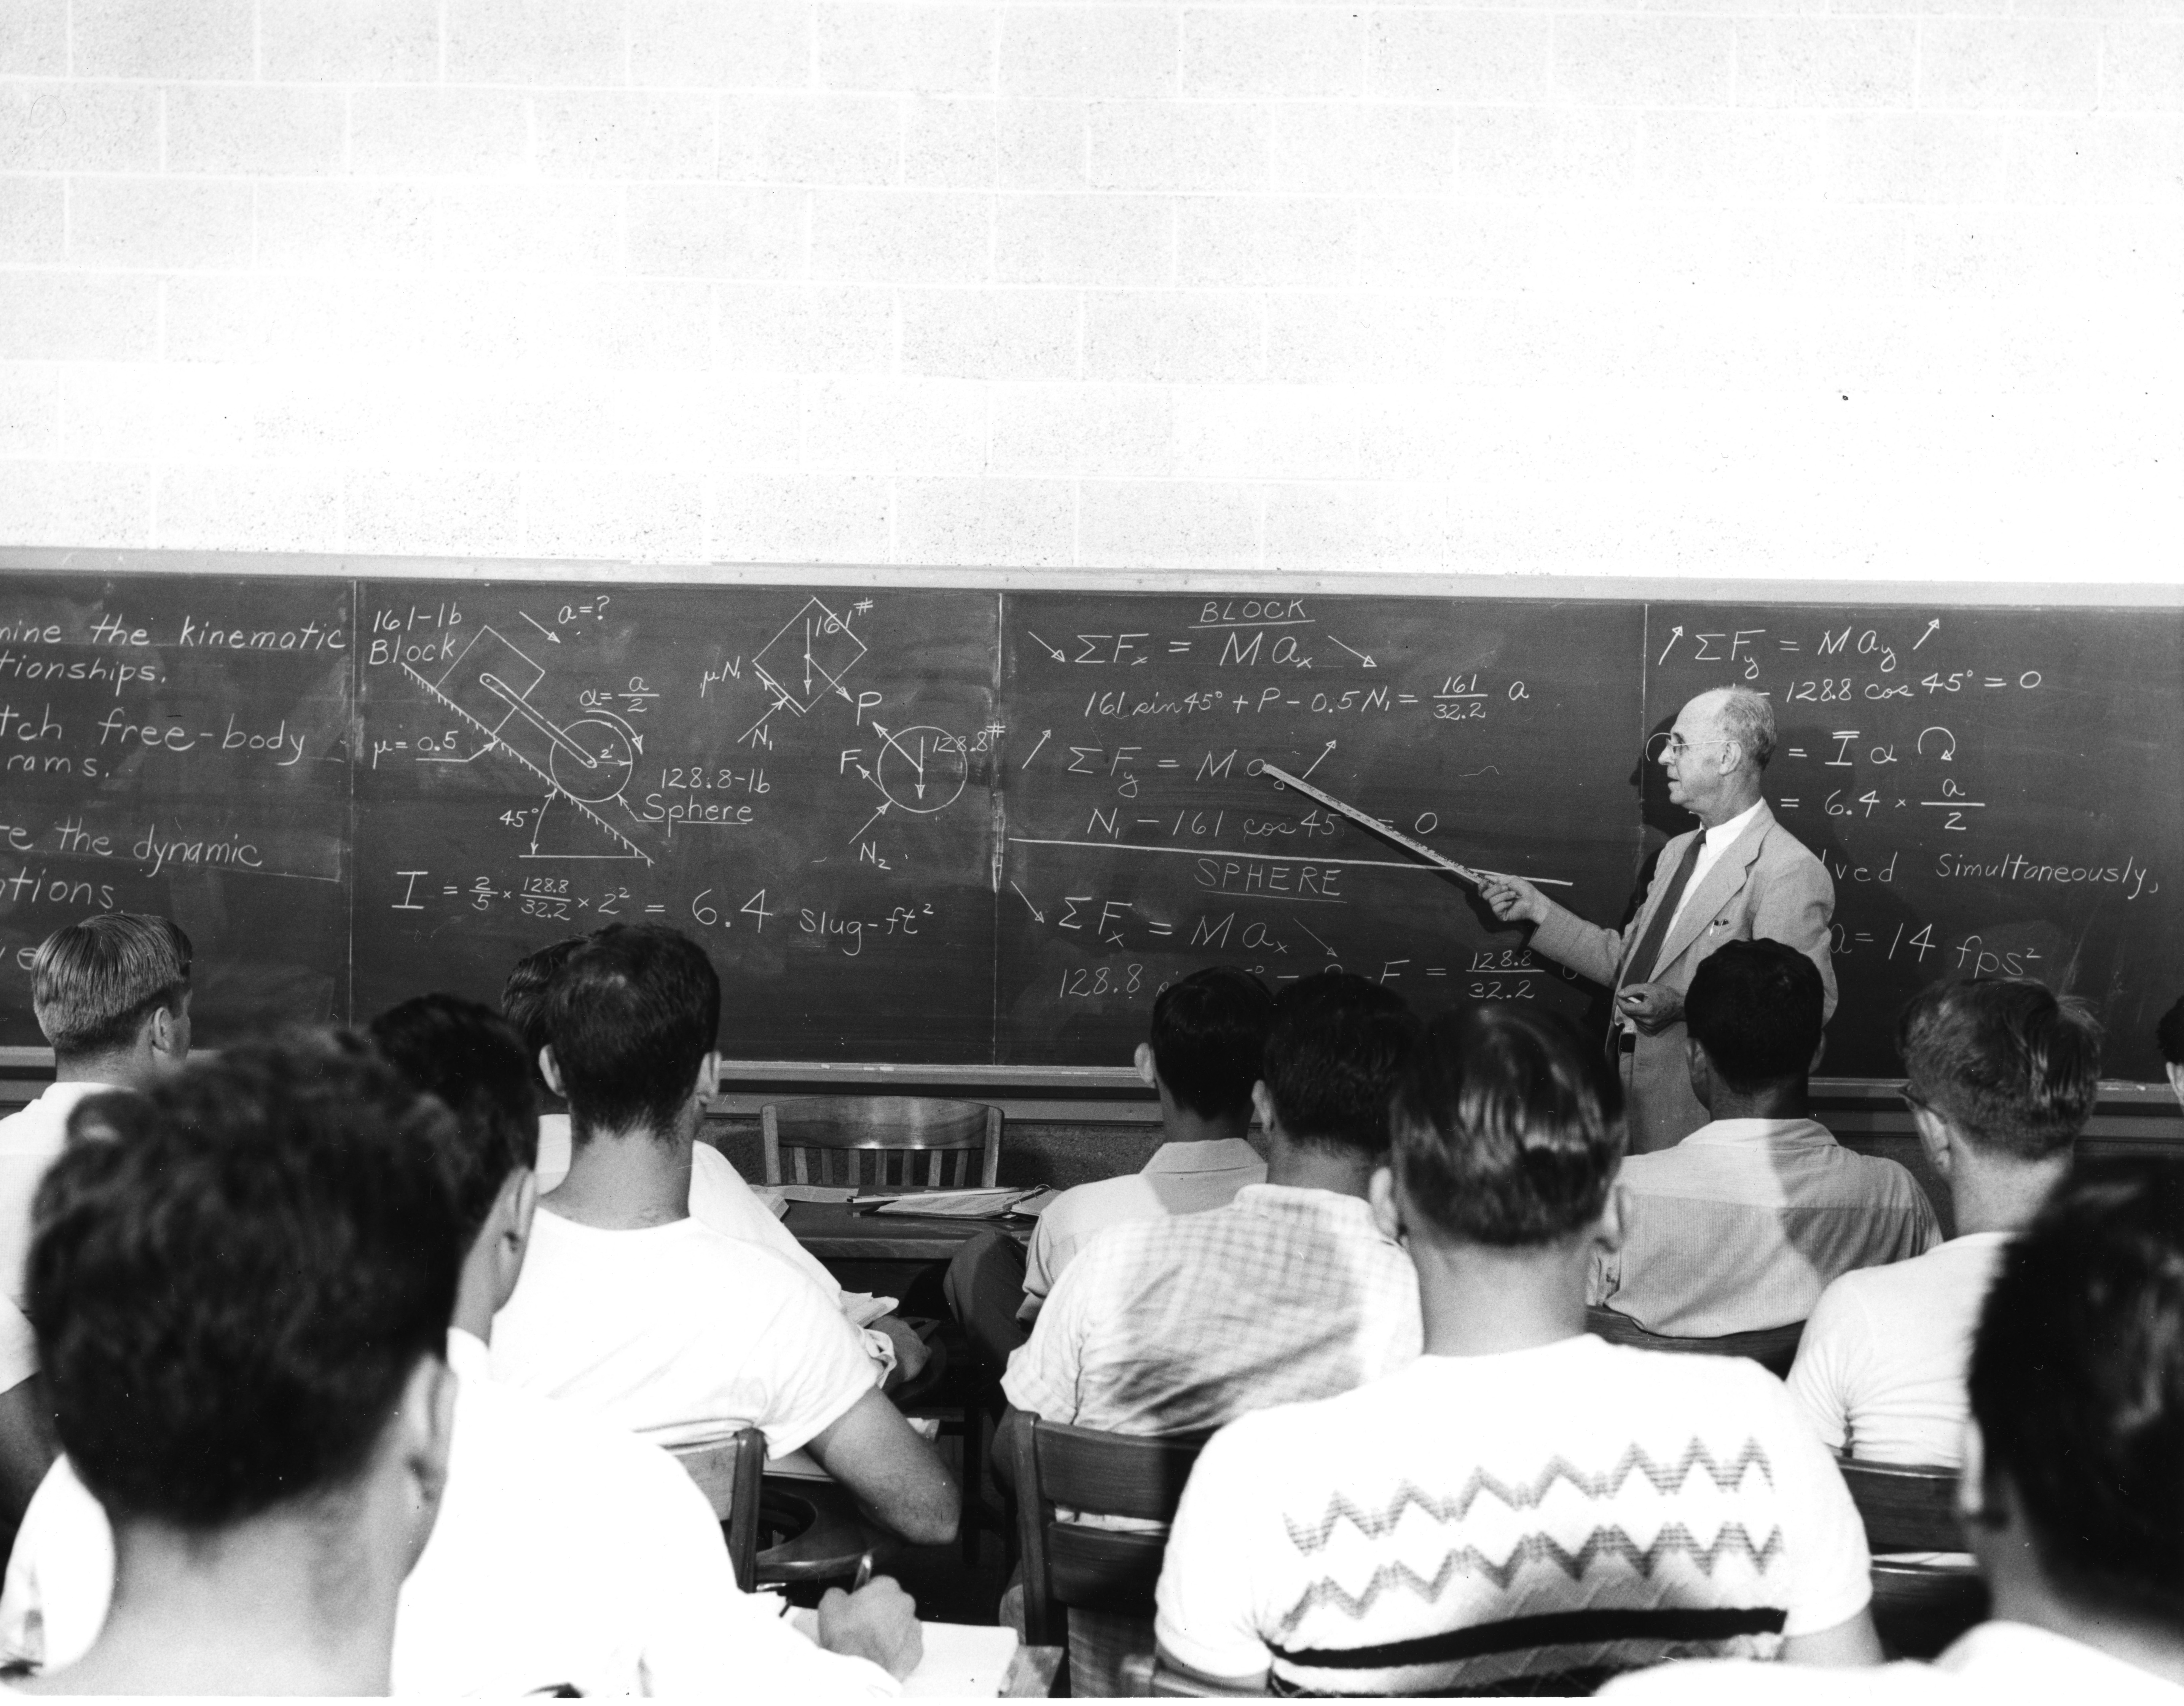 Unidentified professor instructing students, 1950s?